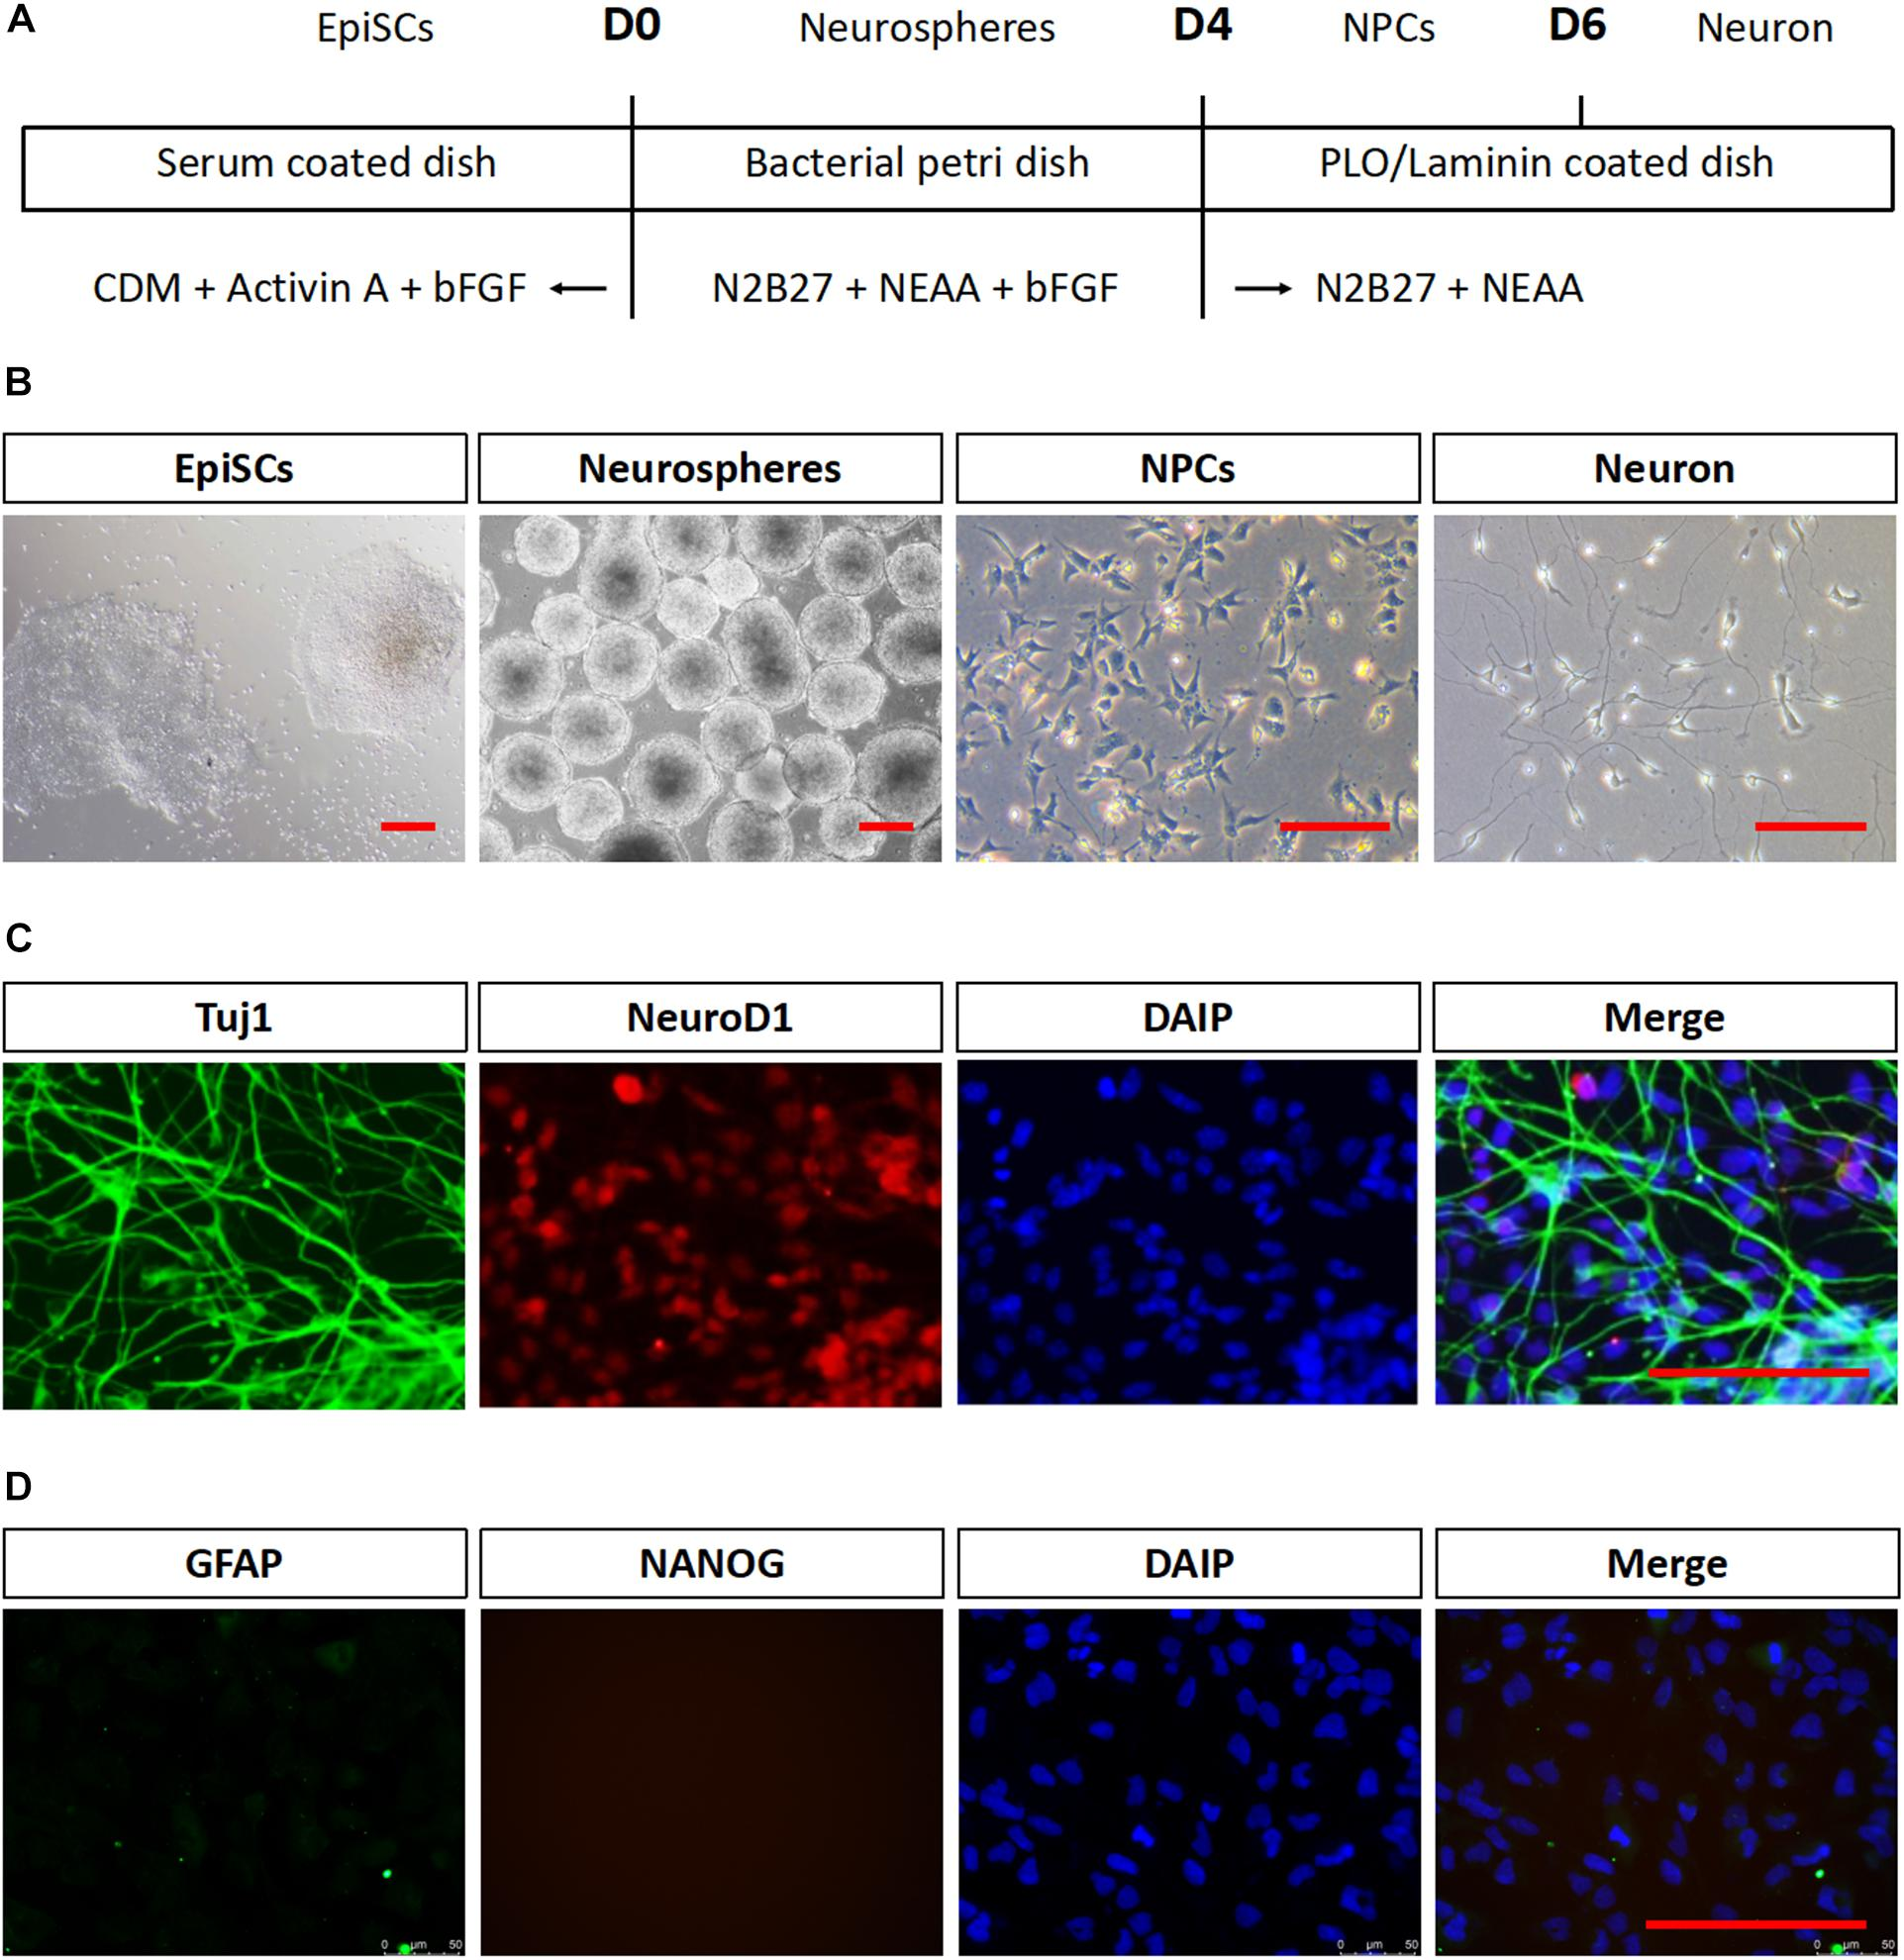 Frontiers | Comparison of in vitro Neuronal Differentiation Capacity